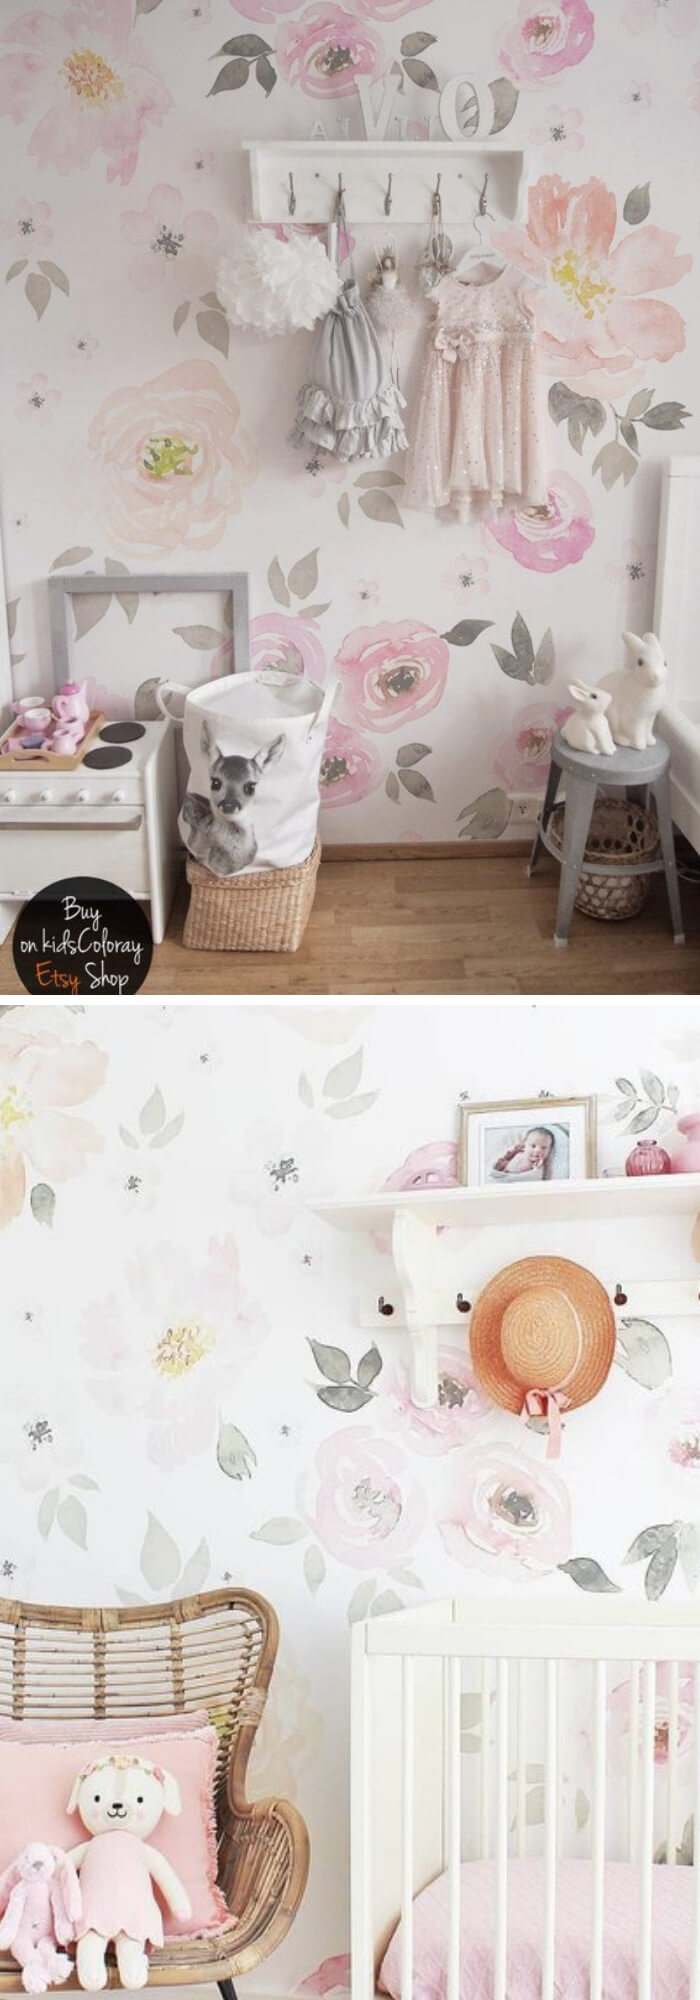 Home Decorating Ideas With Flowers: Vintage Floral wallpaper